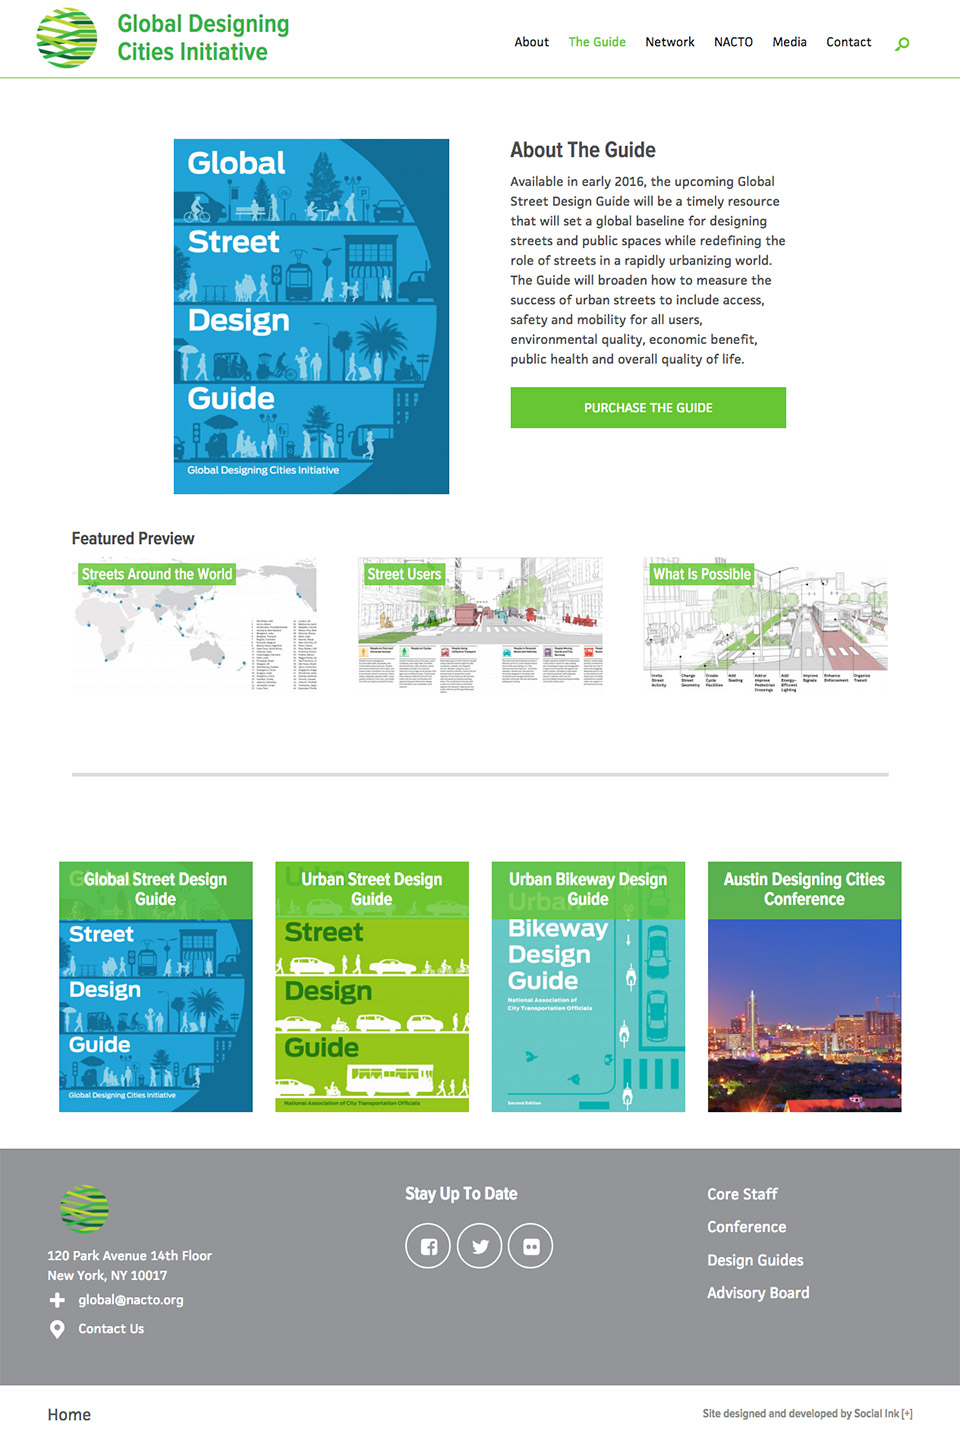 Global Designing Cities Initiative: Guide Purchase Page